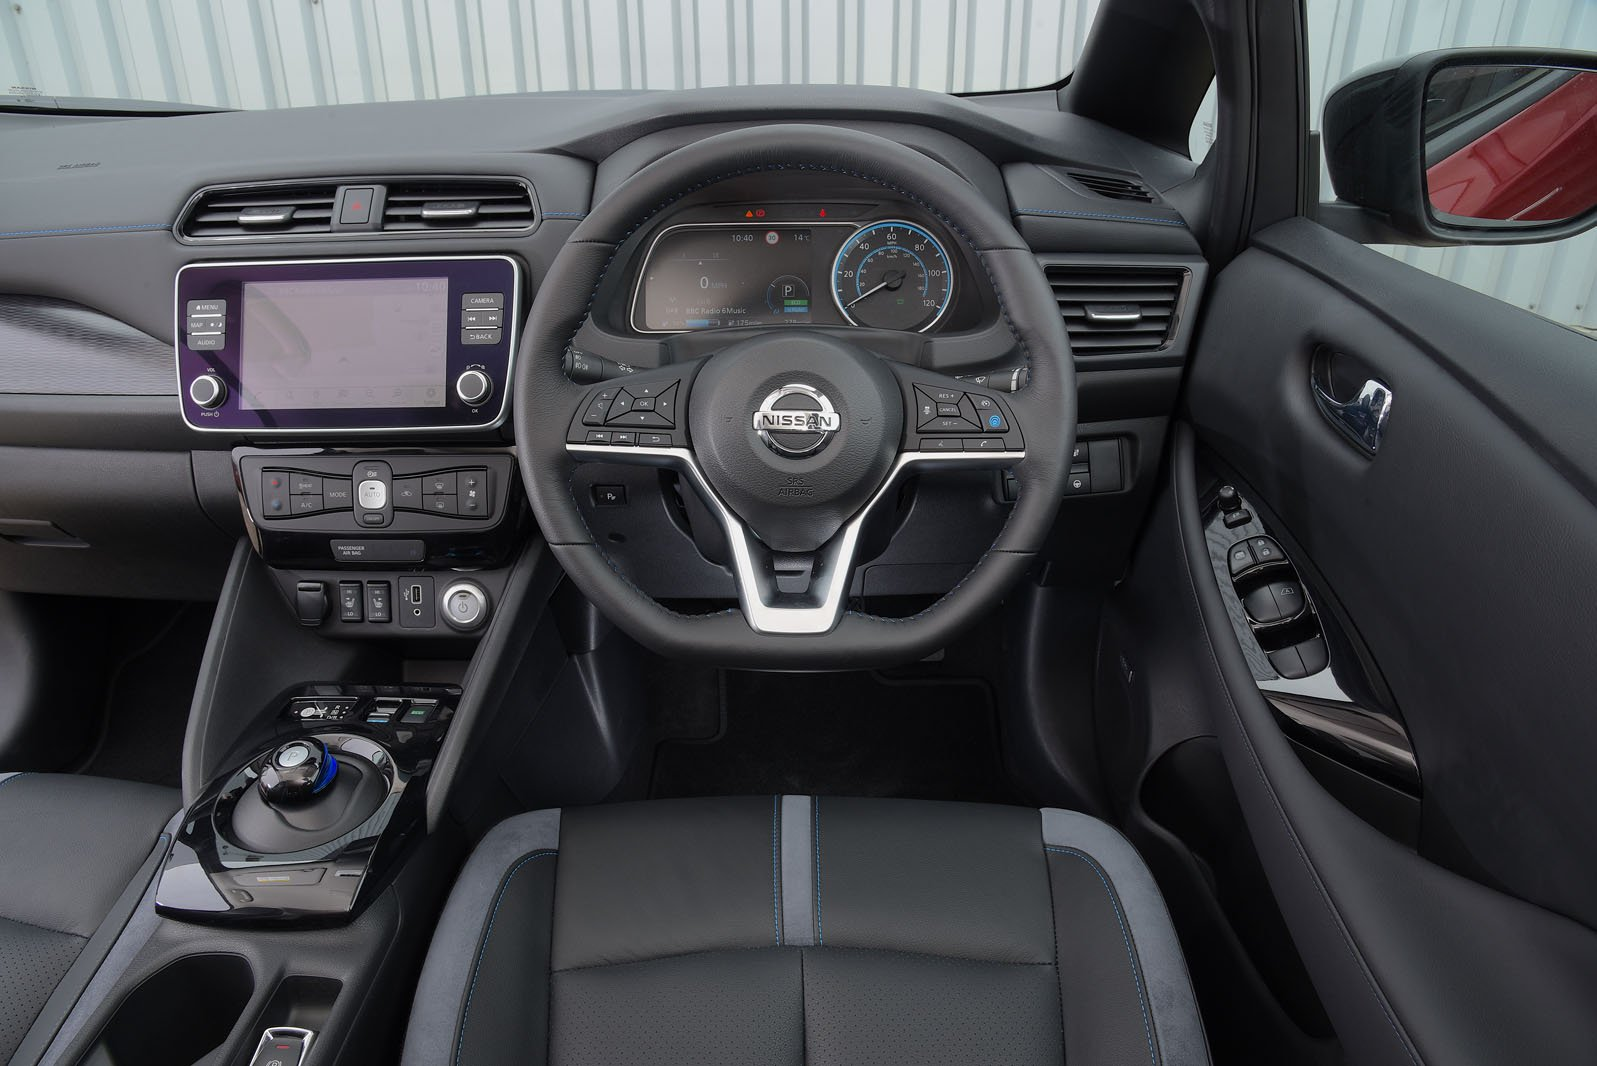 2019 Nissan Leaf 62kWh dashboard